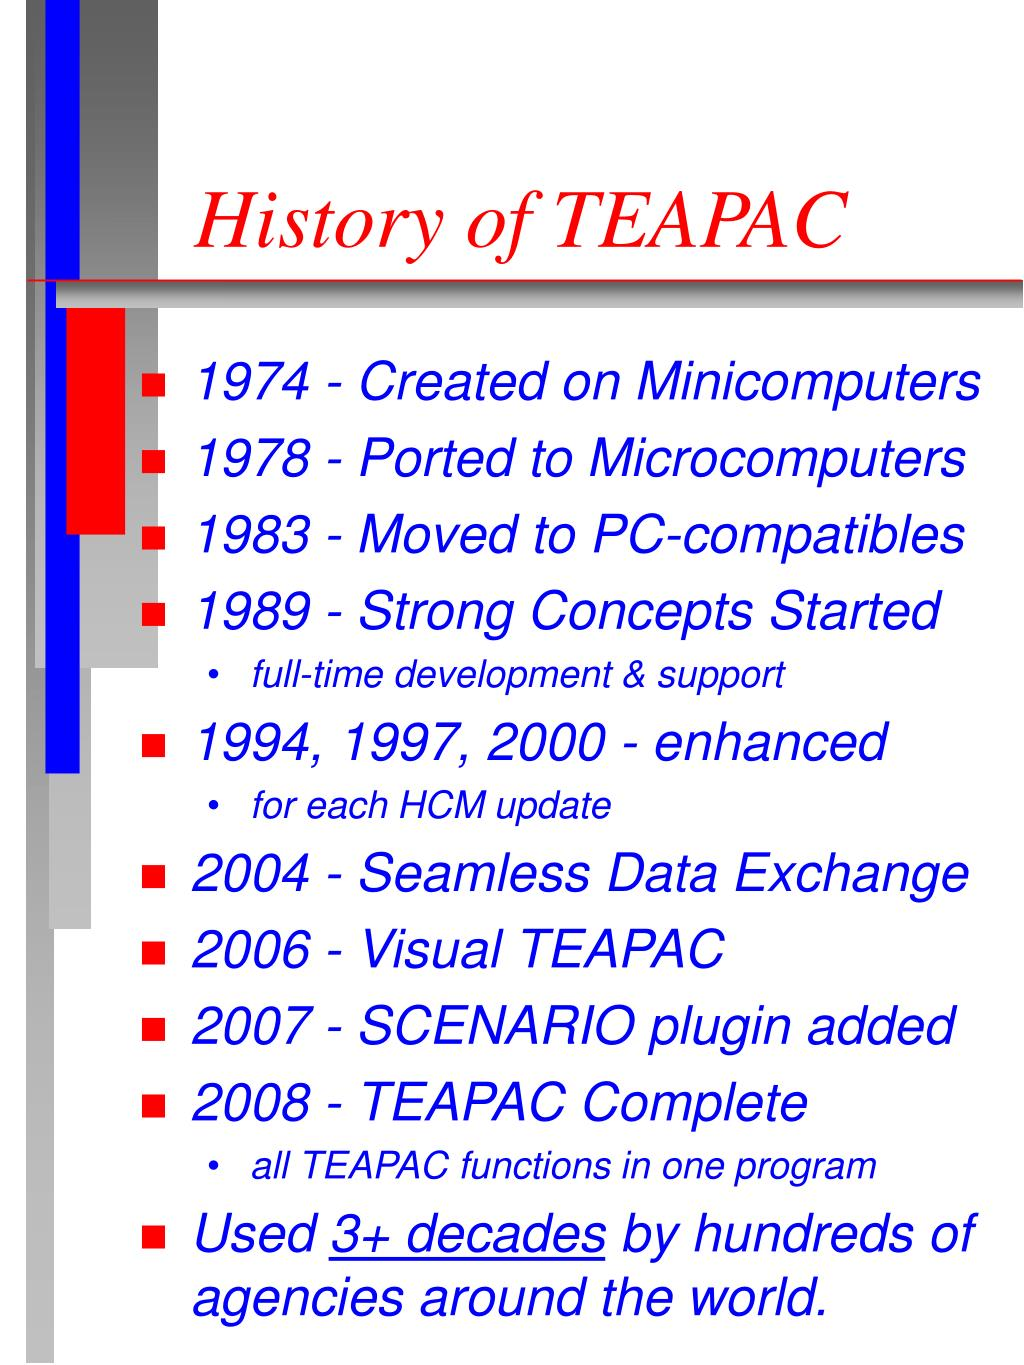 History of TEAPAC